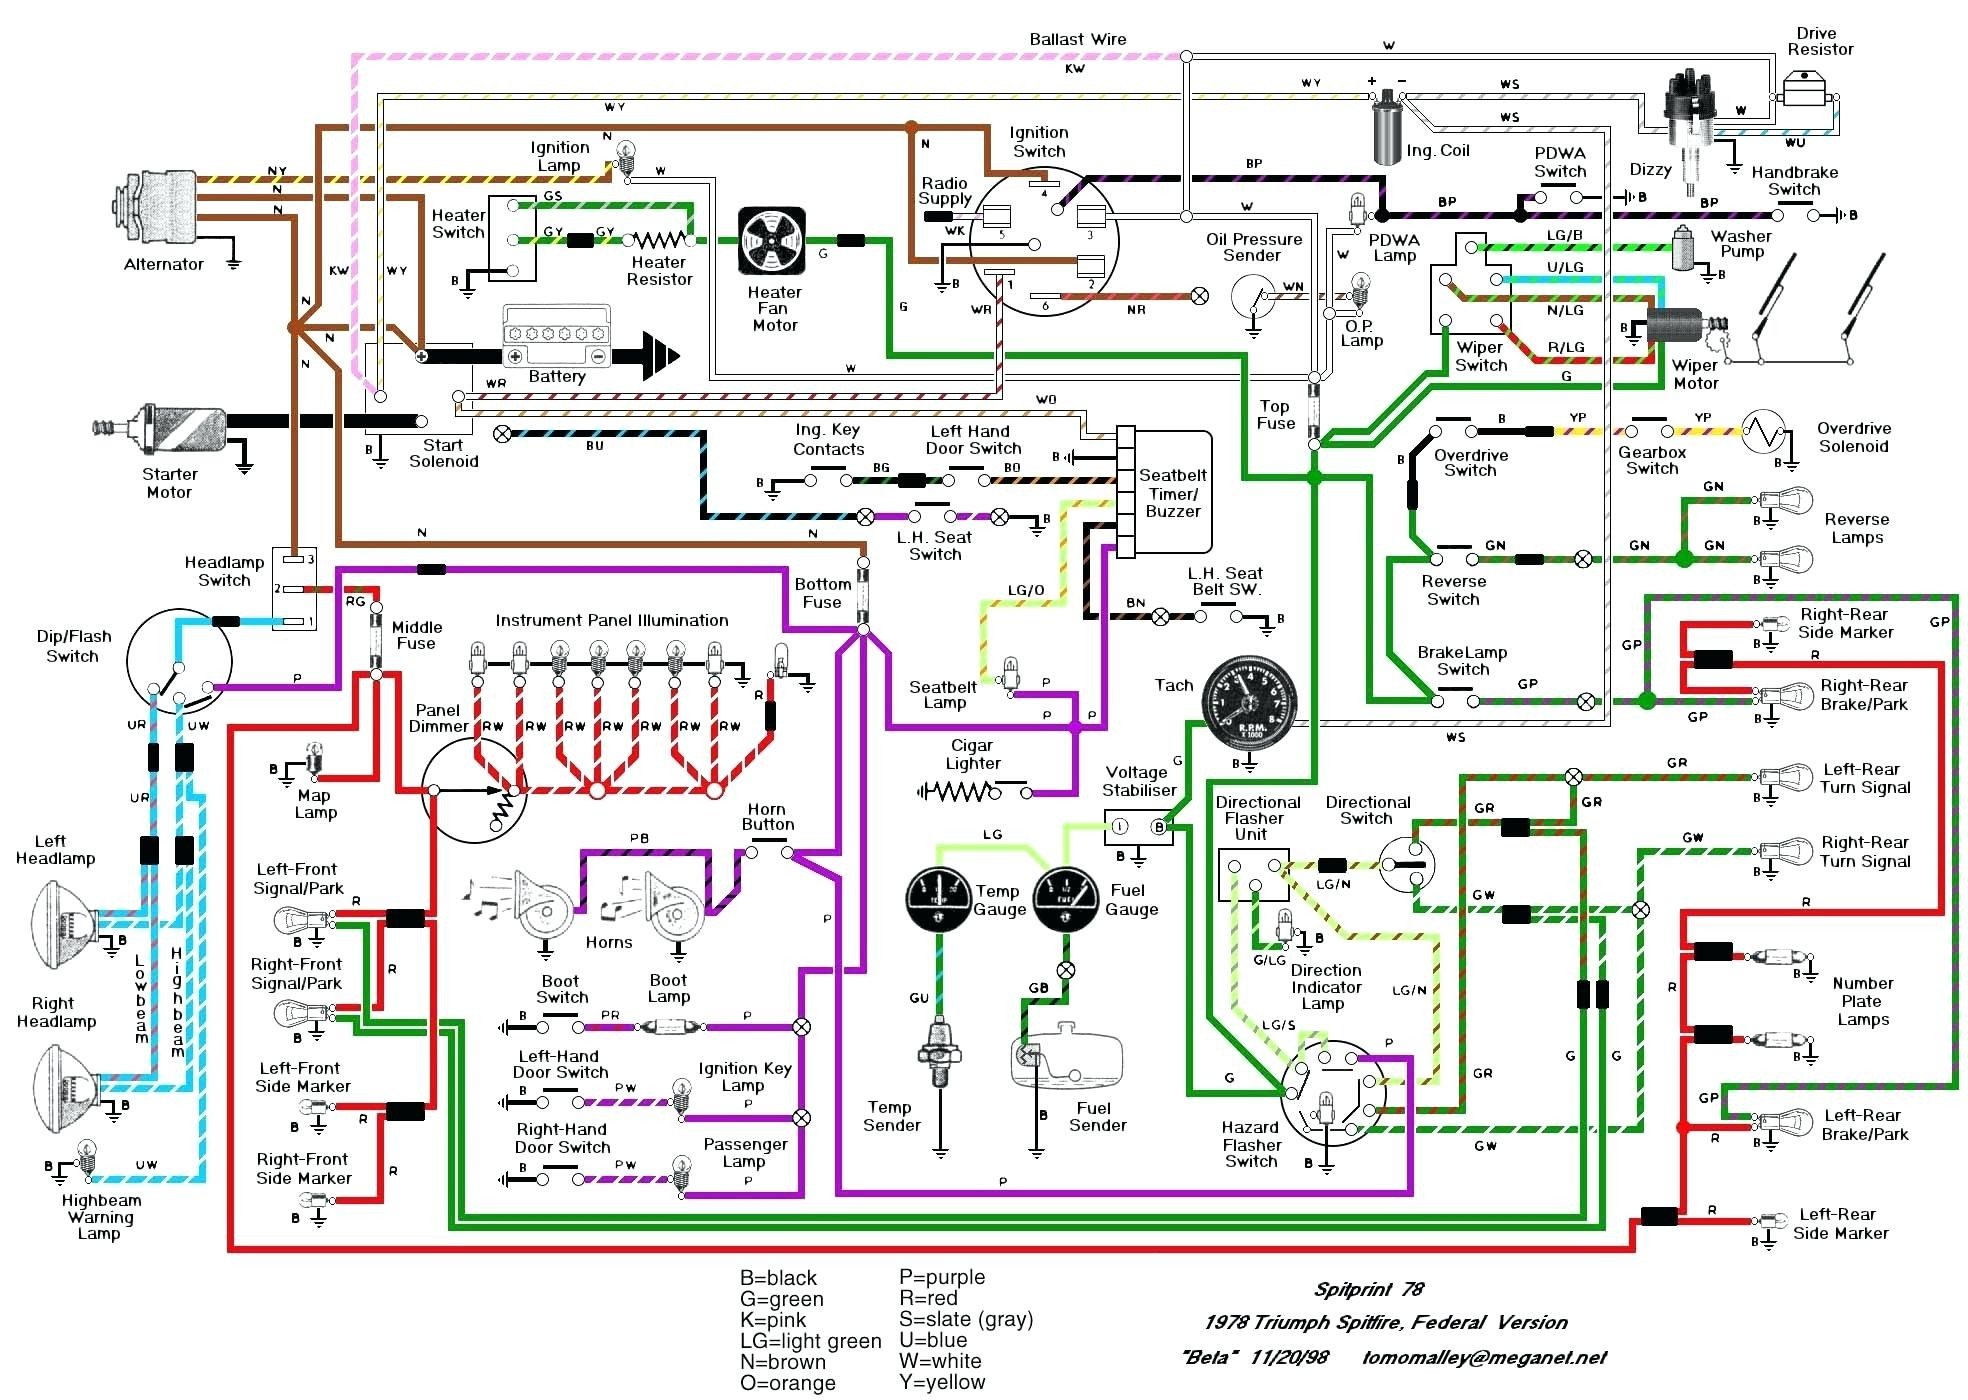 wire diagrams for cars wiring diagram for nest thermostat diagrams rh detoxicrecenze com car wiring diagram software car wiring diagram